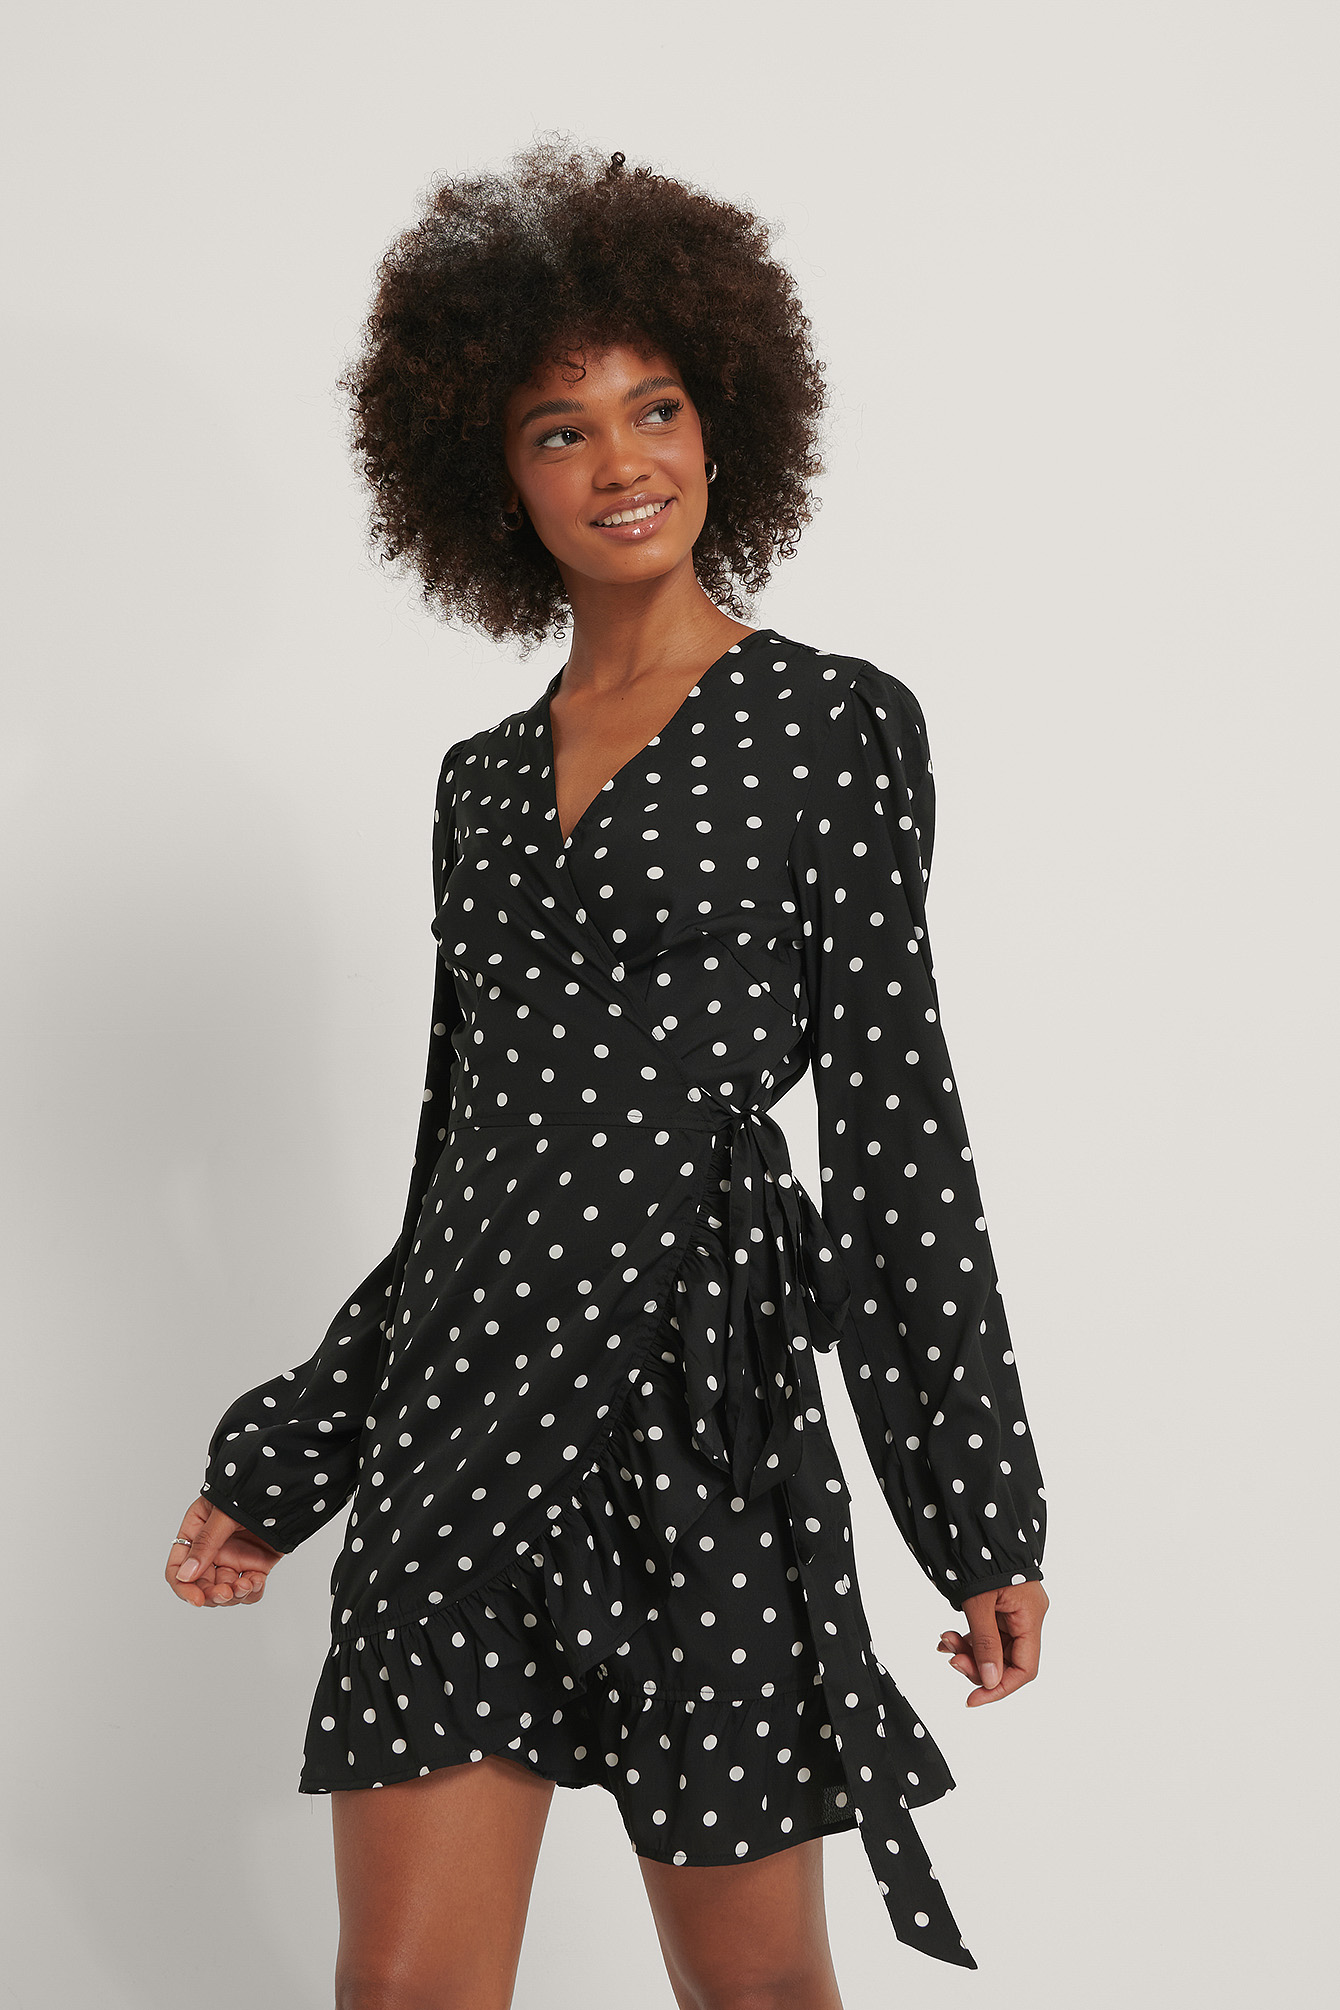 Black Polka Dot Robe Cache-Coeur